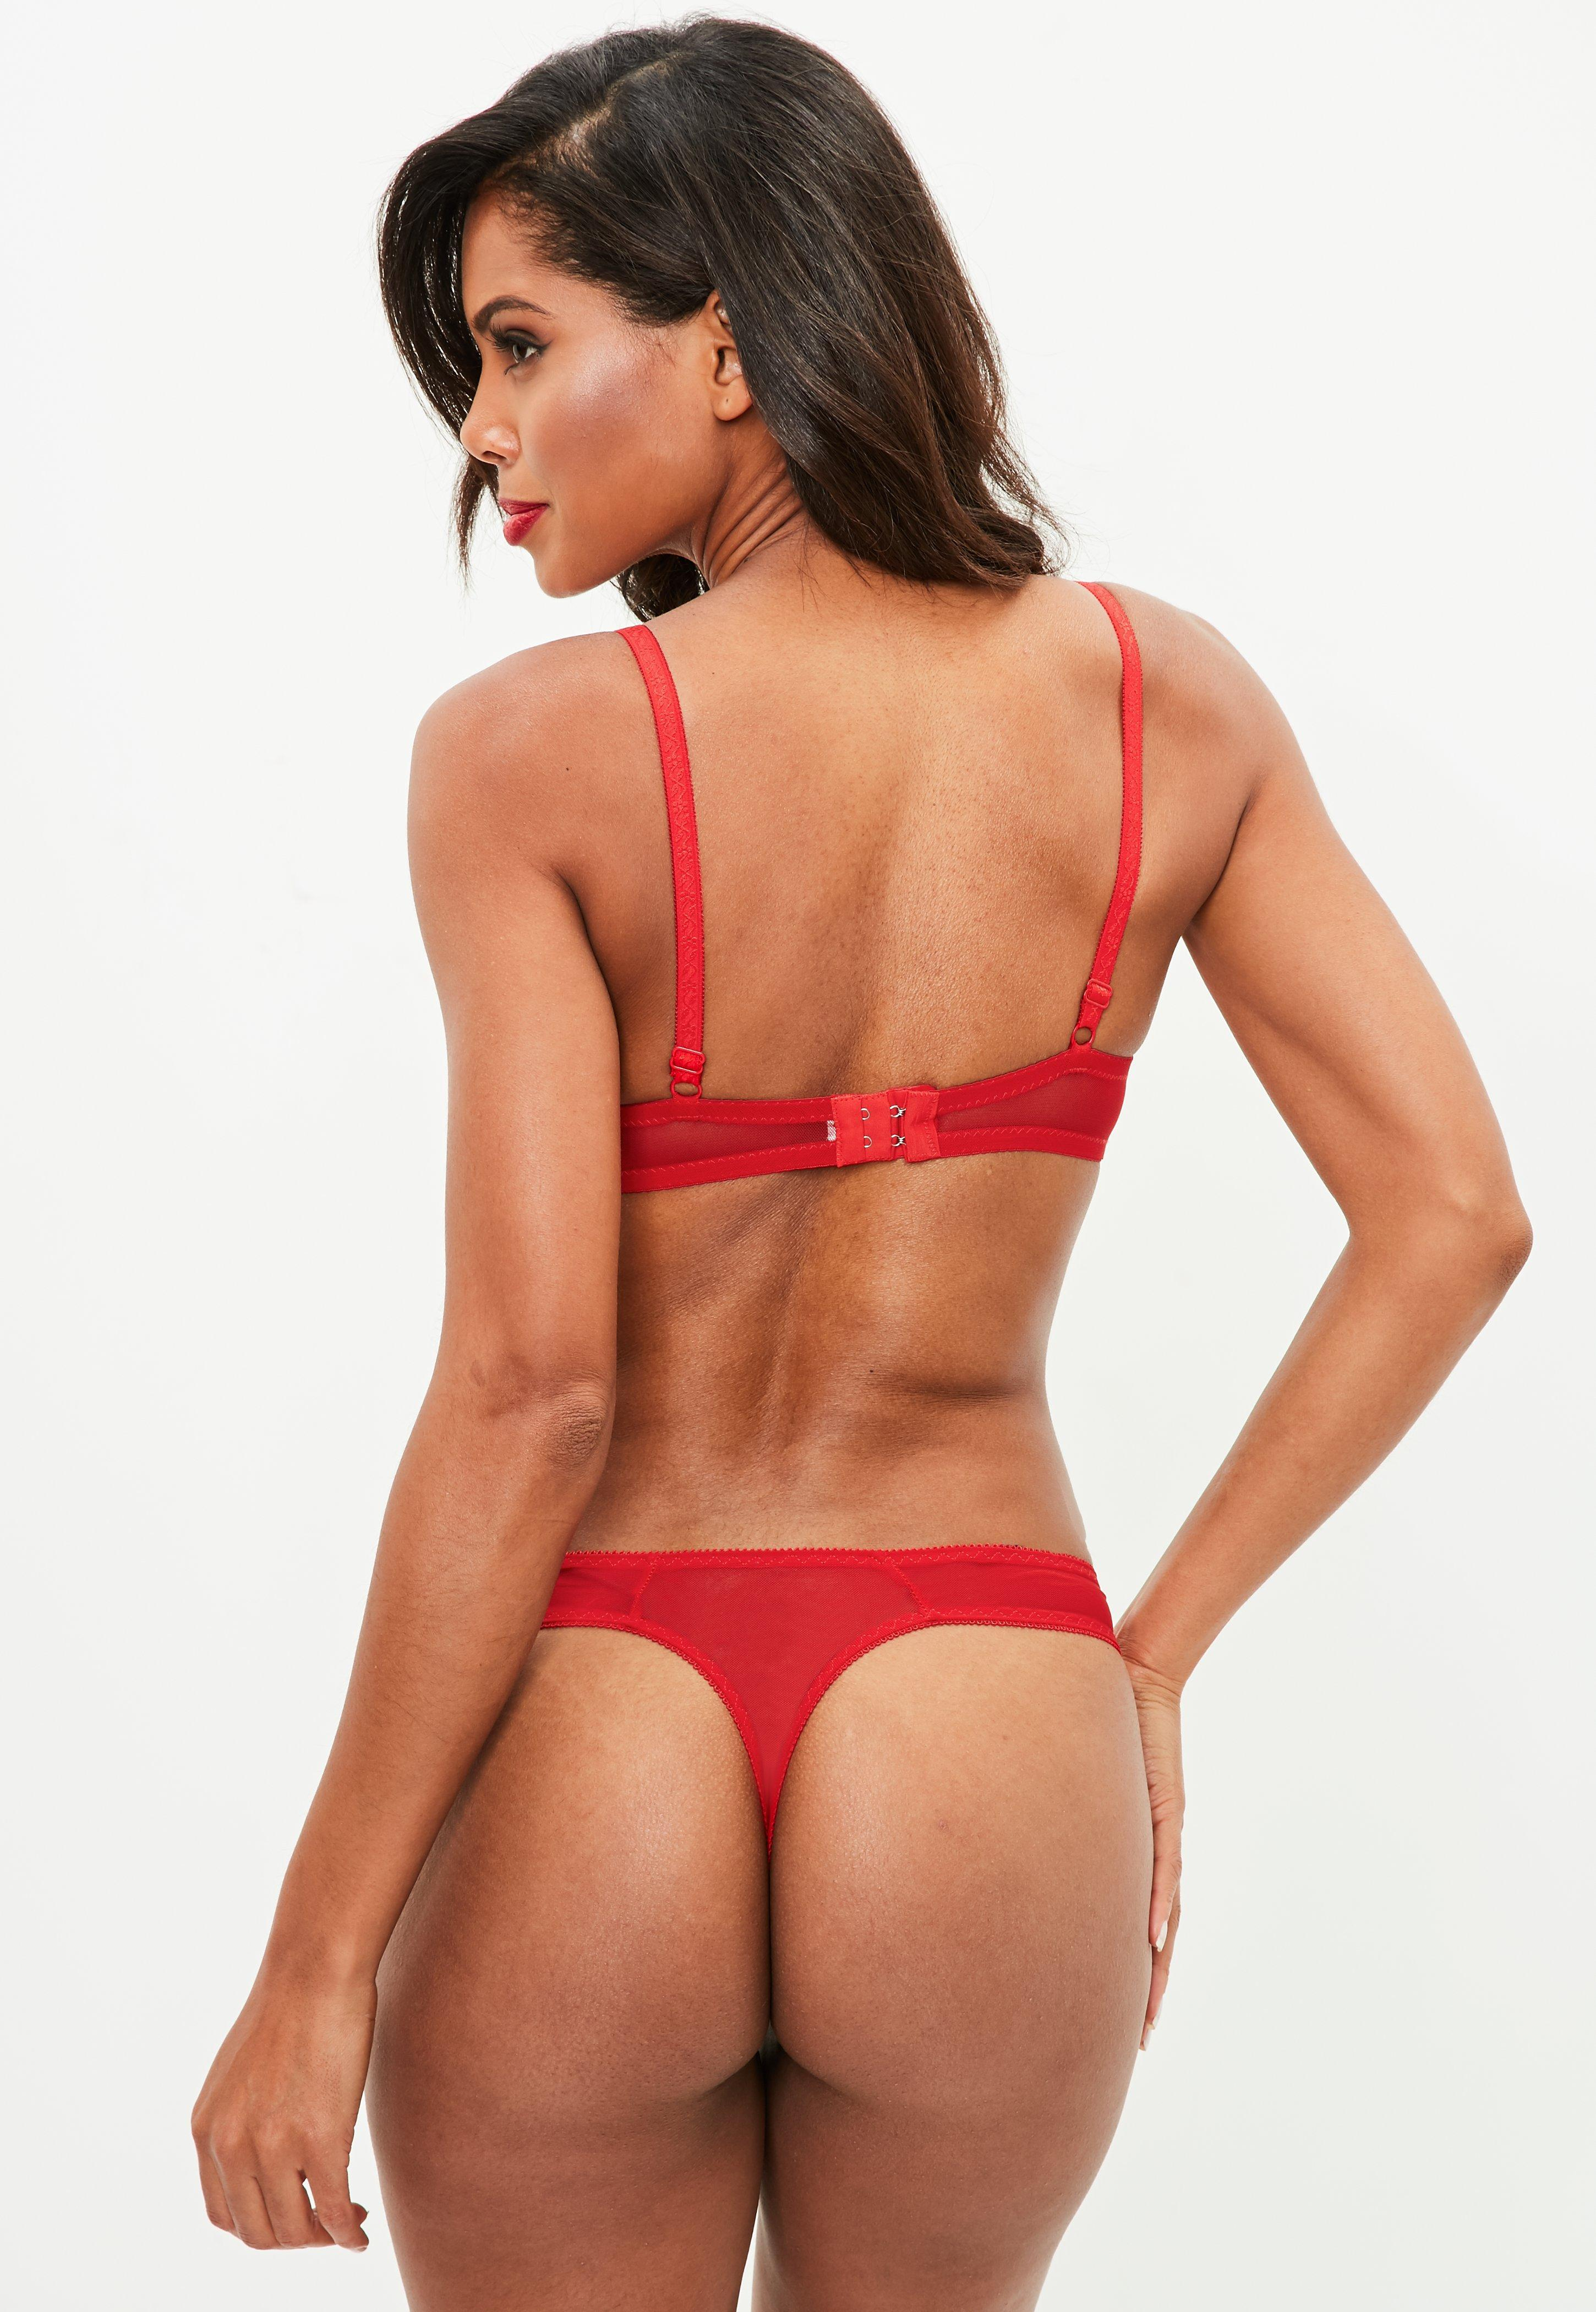 Missguided Red Chiffon Pleat Lace Push Up Bra And Thong Set in Red ... 4c72a6dbd